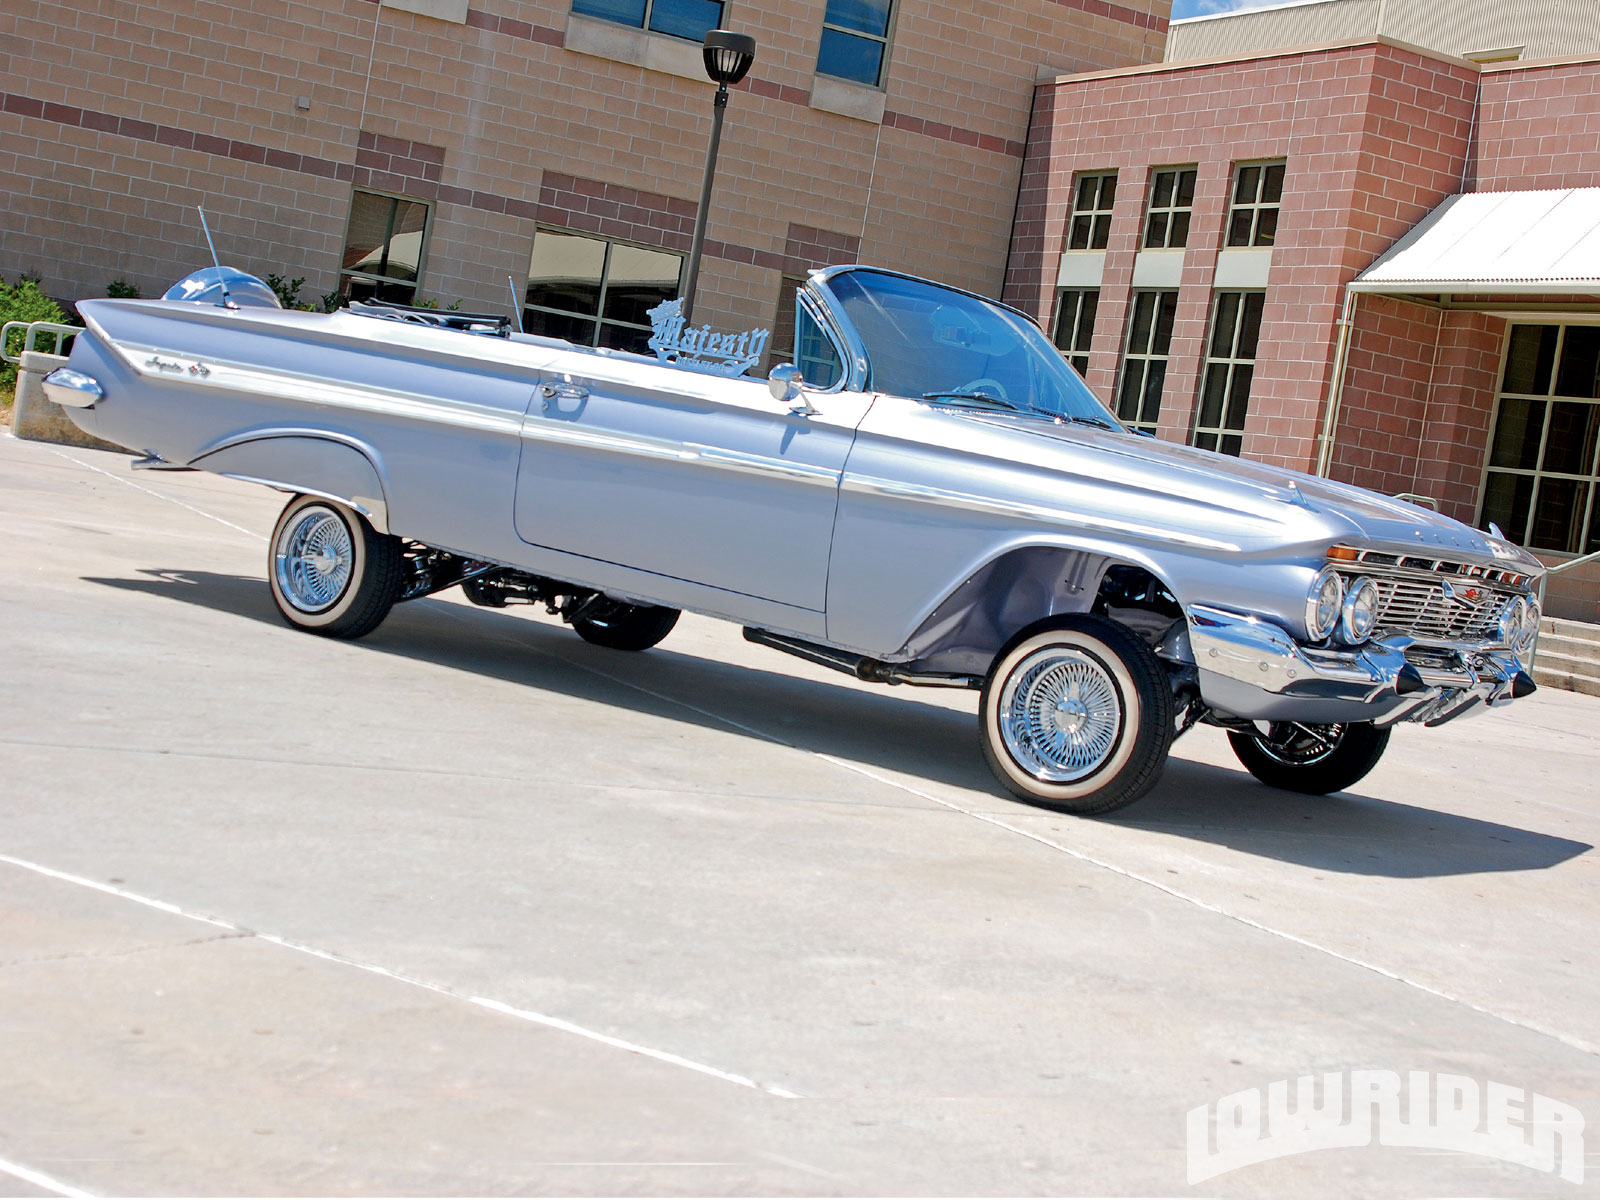 Lowrider Rims And Tires >> 1961 Chevrolet Impala Convertible - Lowrider Magazine